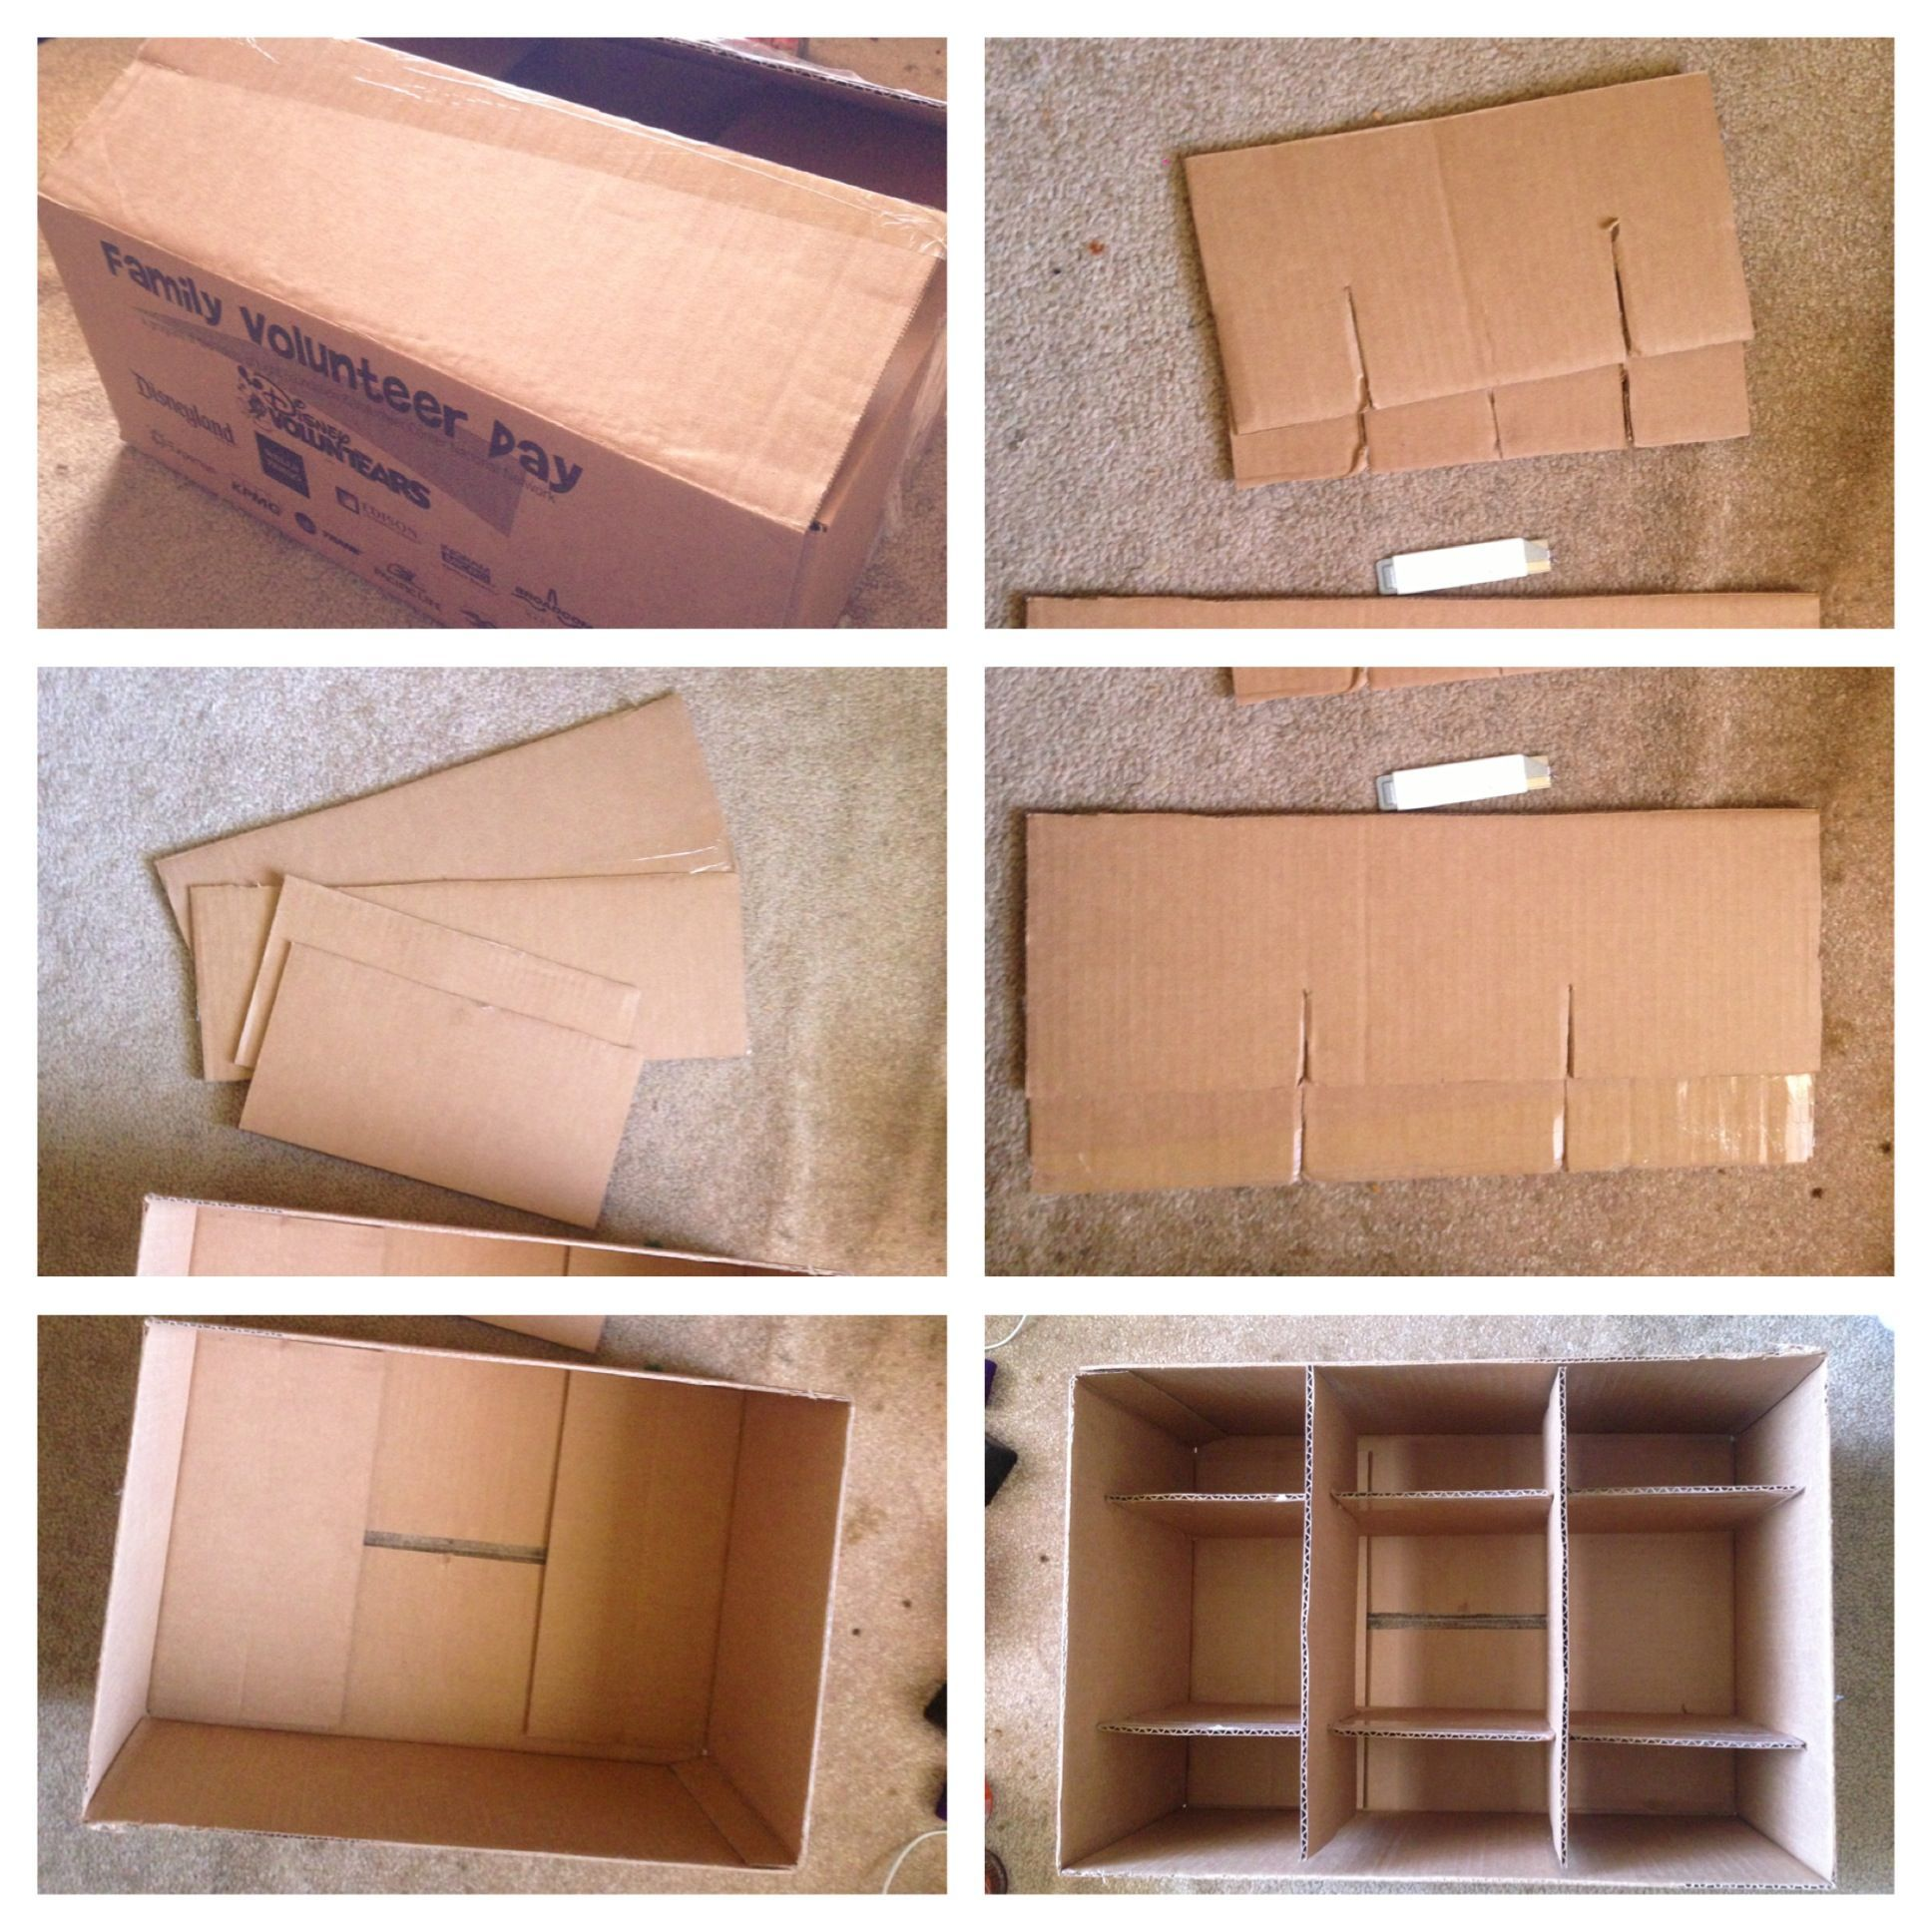 Making a storage box with dividers using